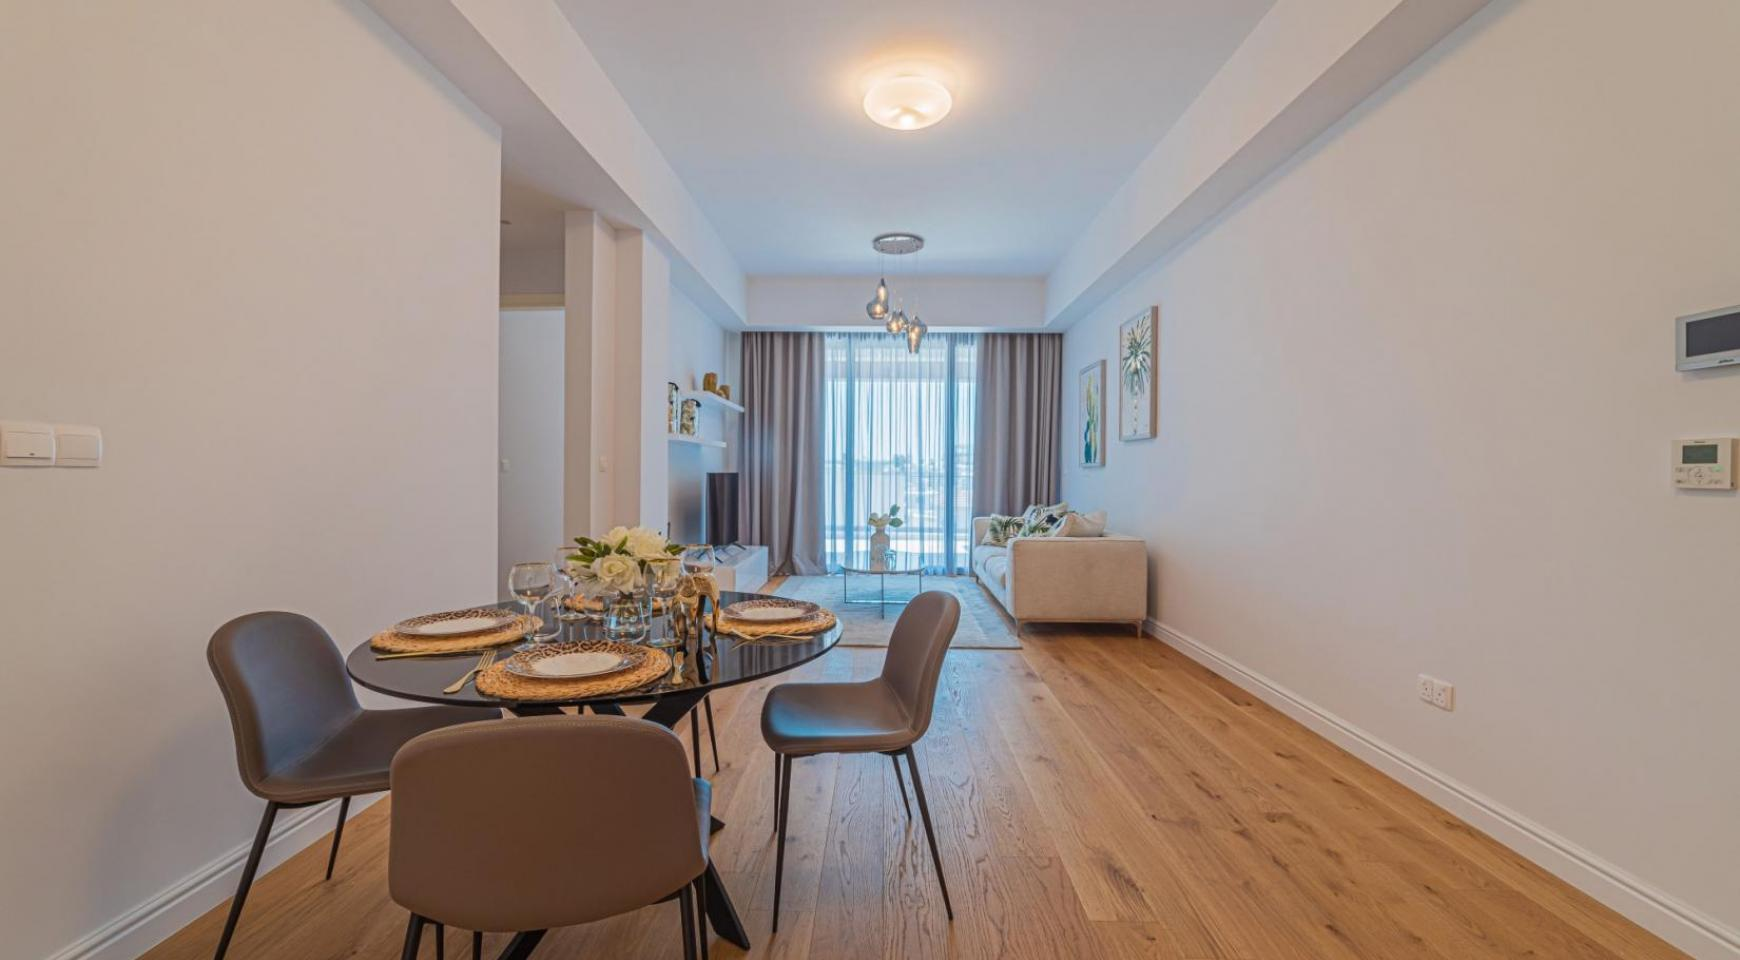 Hortensia Residence, Apt. 301. 2 Bedroom Apartment within a New Complex near the Sea  - 57